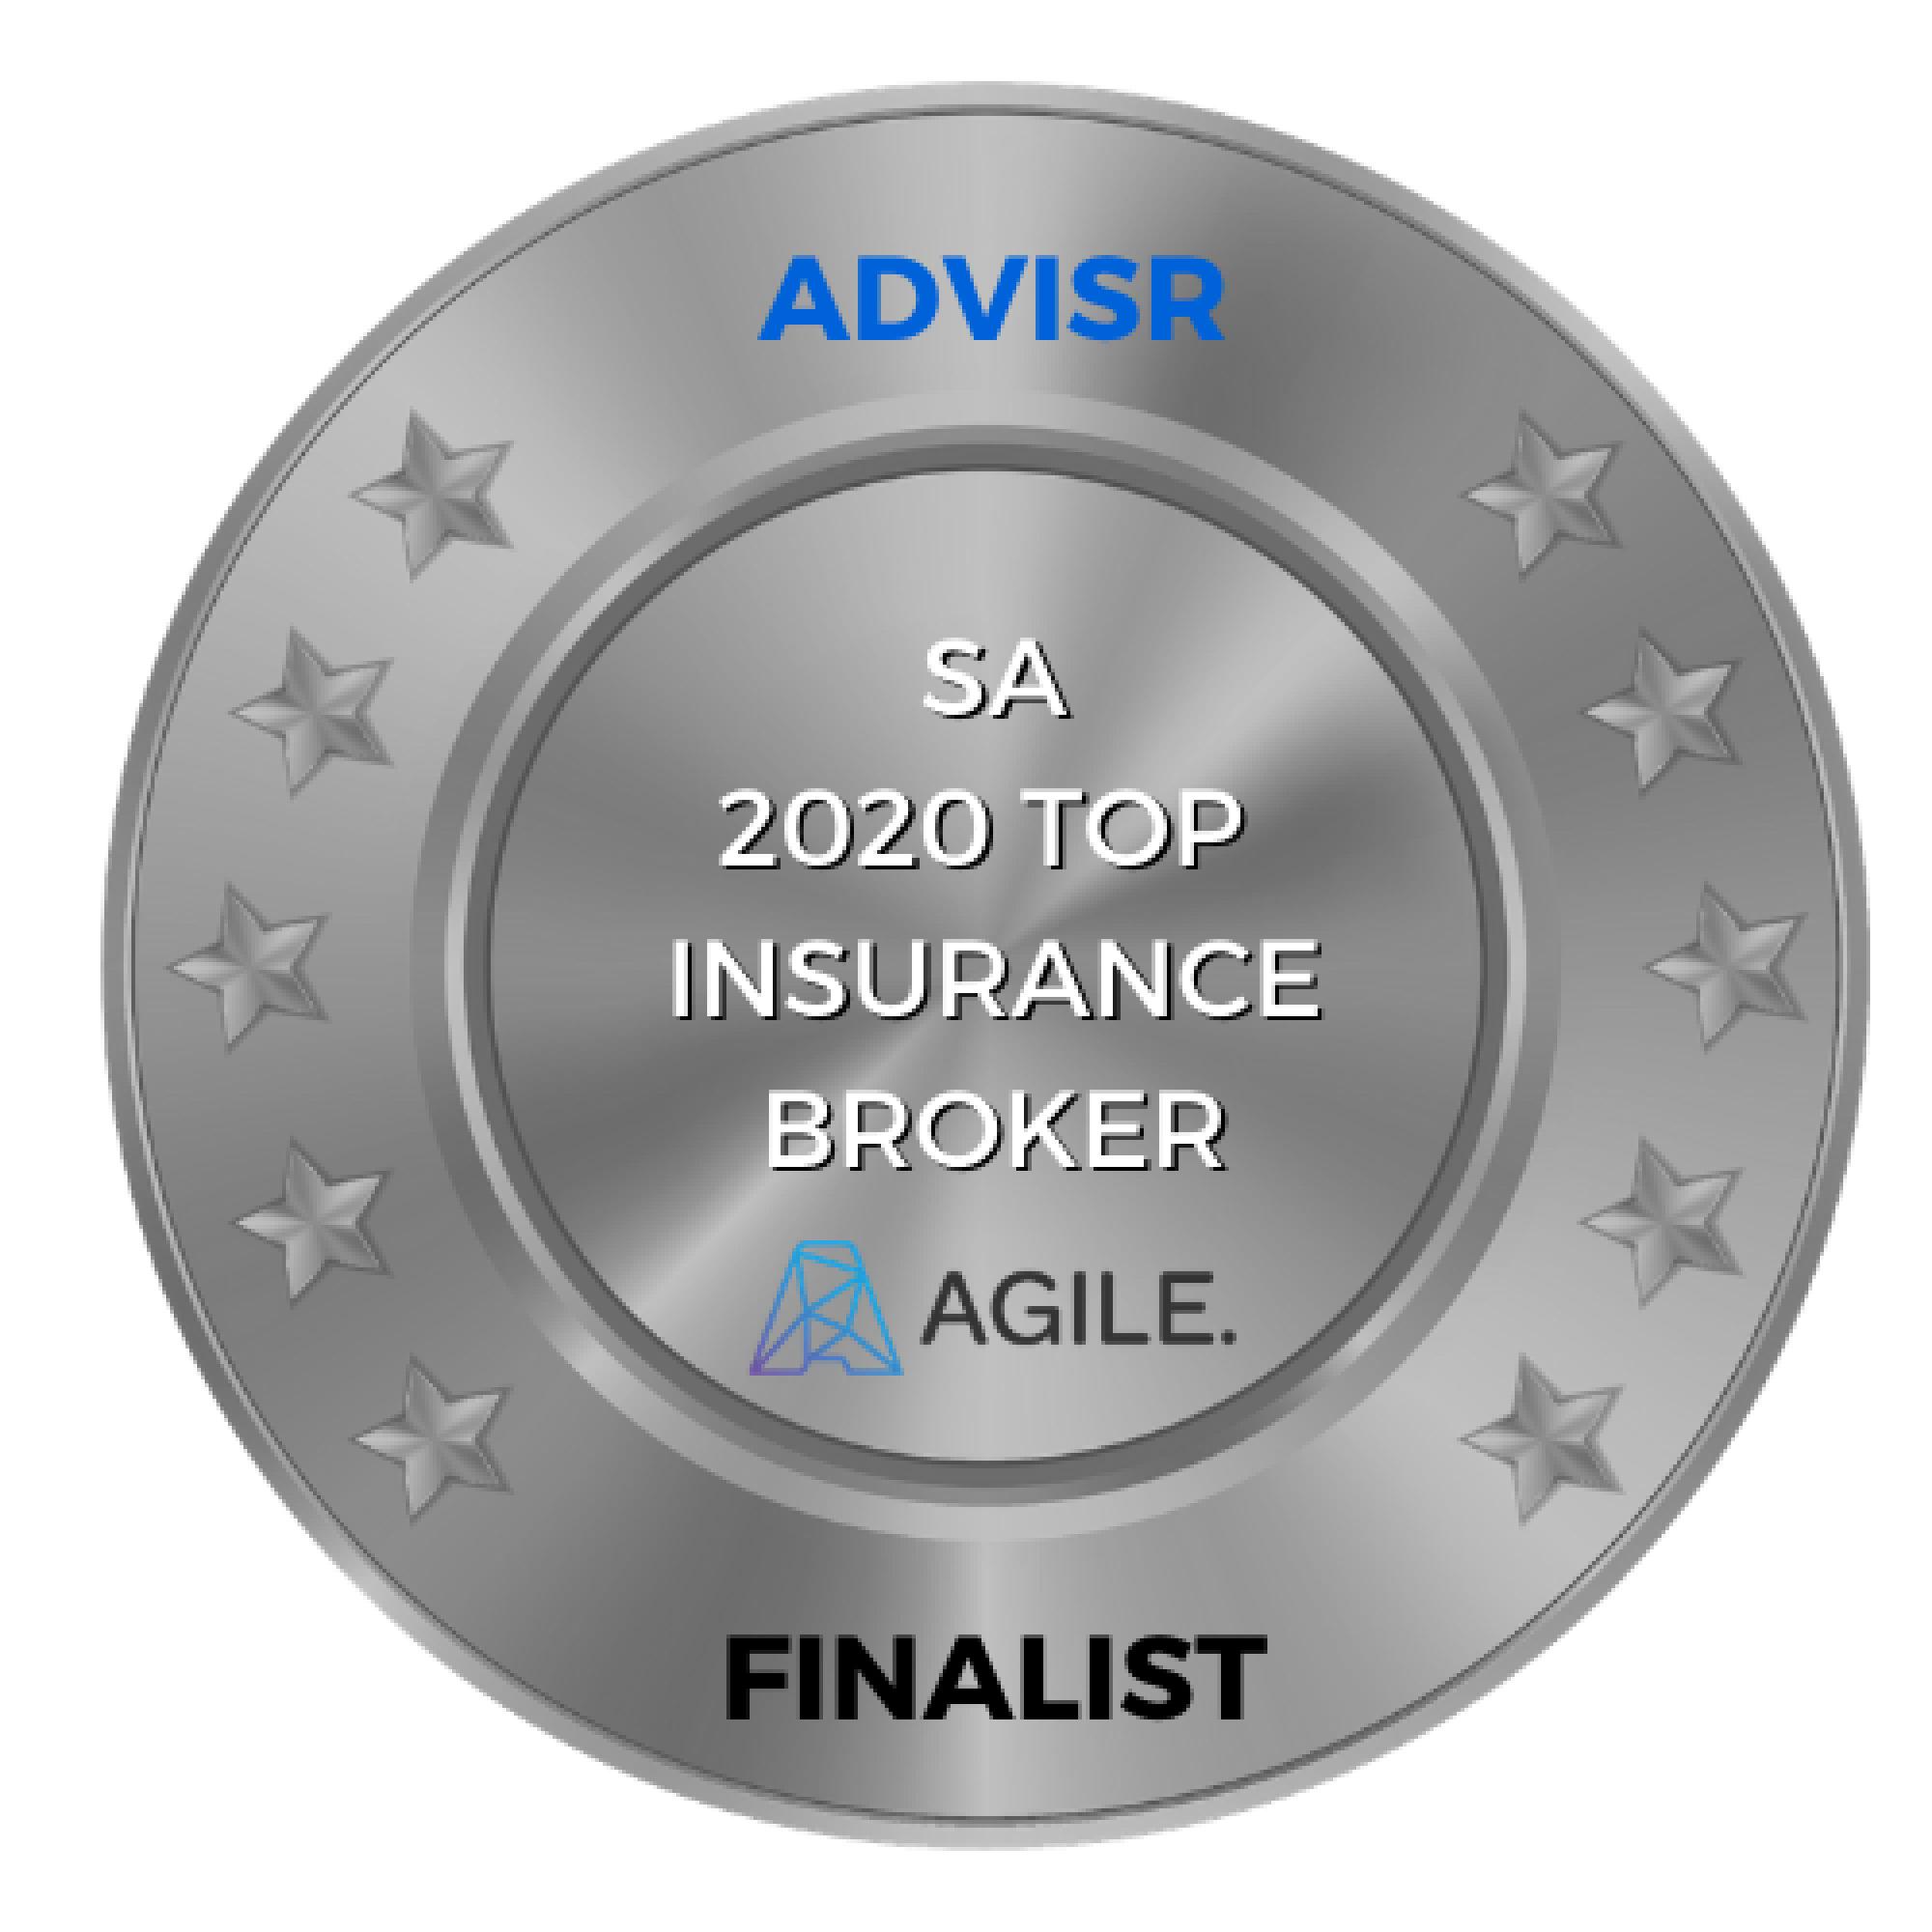 Advisr Insurance Broker Awards 2020 Finalist | South Australia Top Insurance Broker